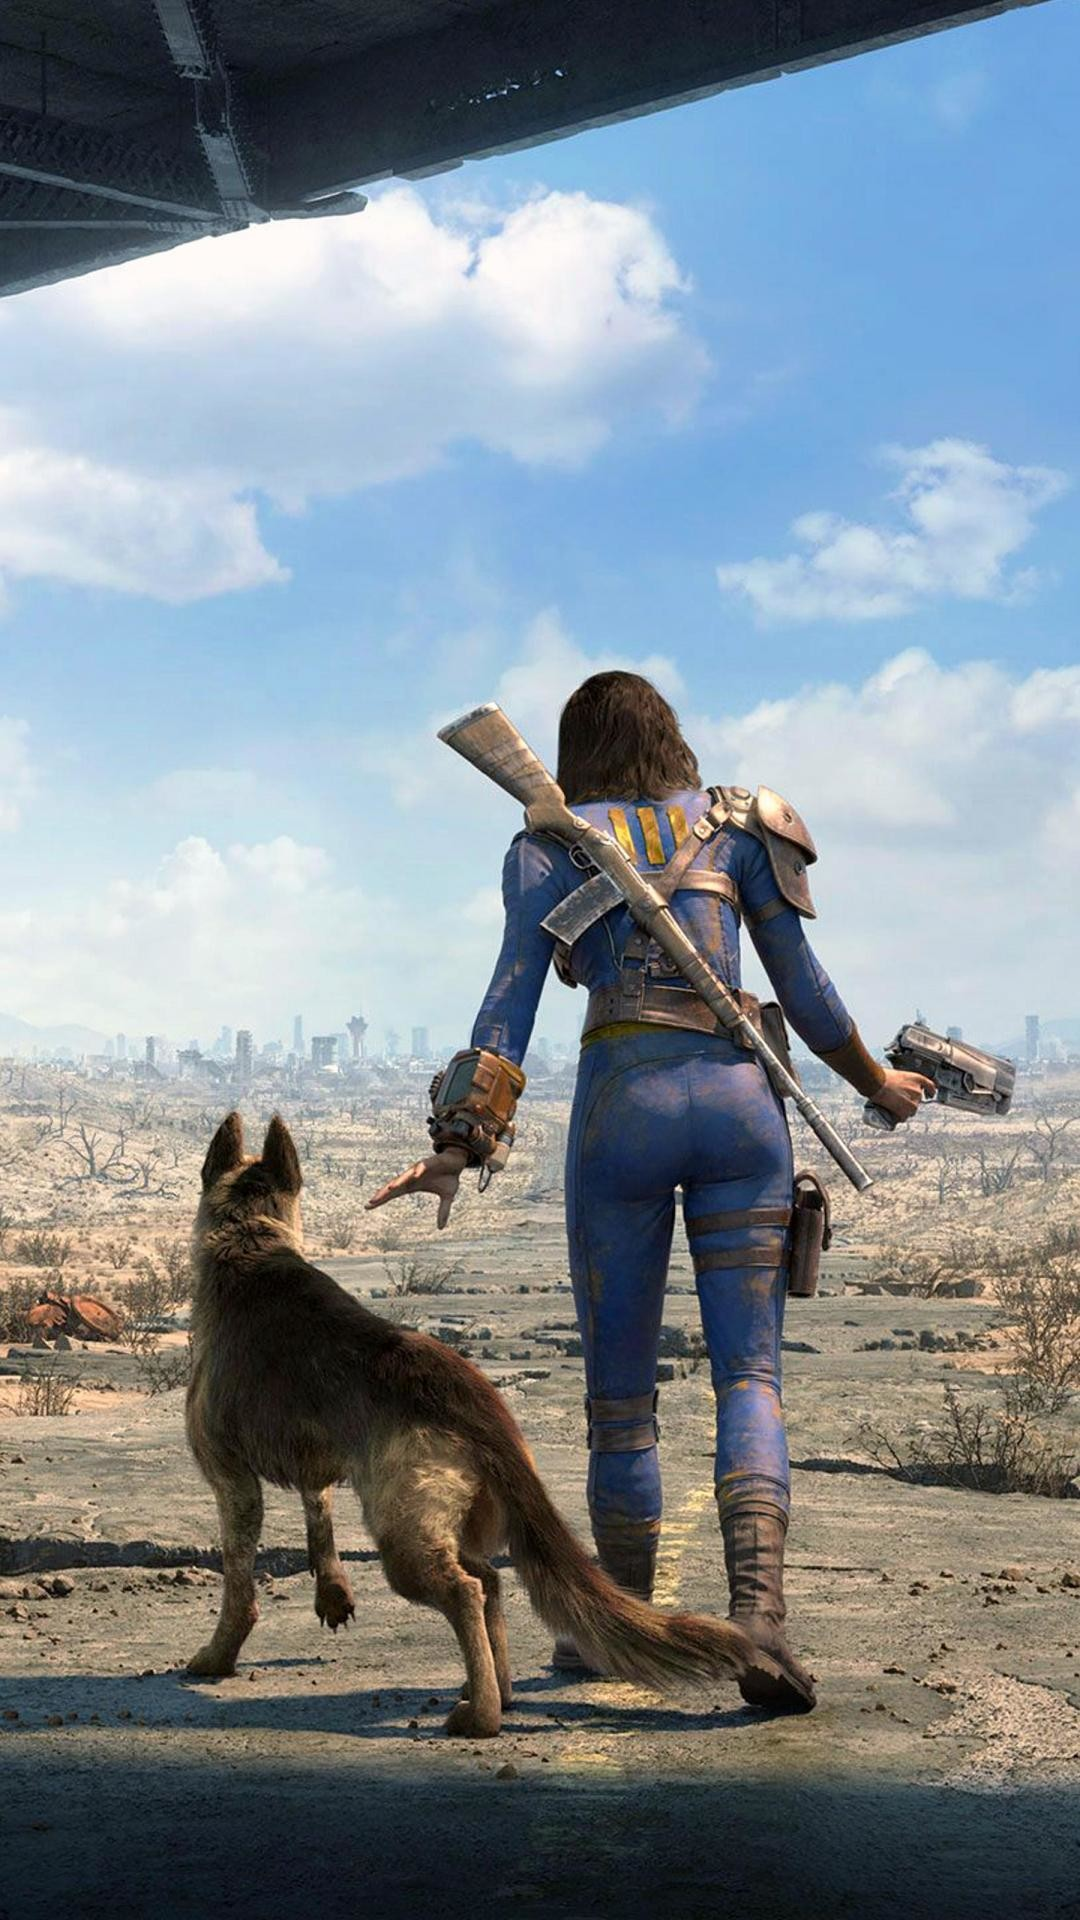 Awesome fallout 4 wallpaper for iPhone 6 plus – WallpapersIQ